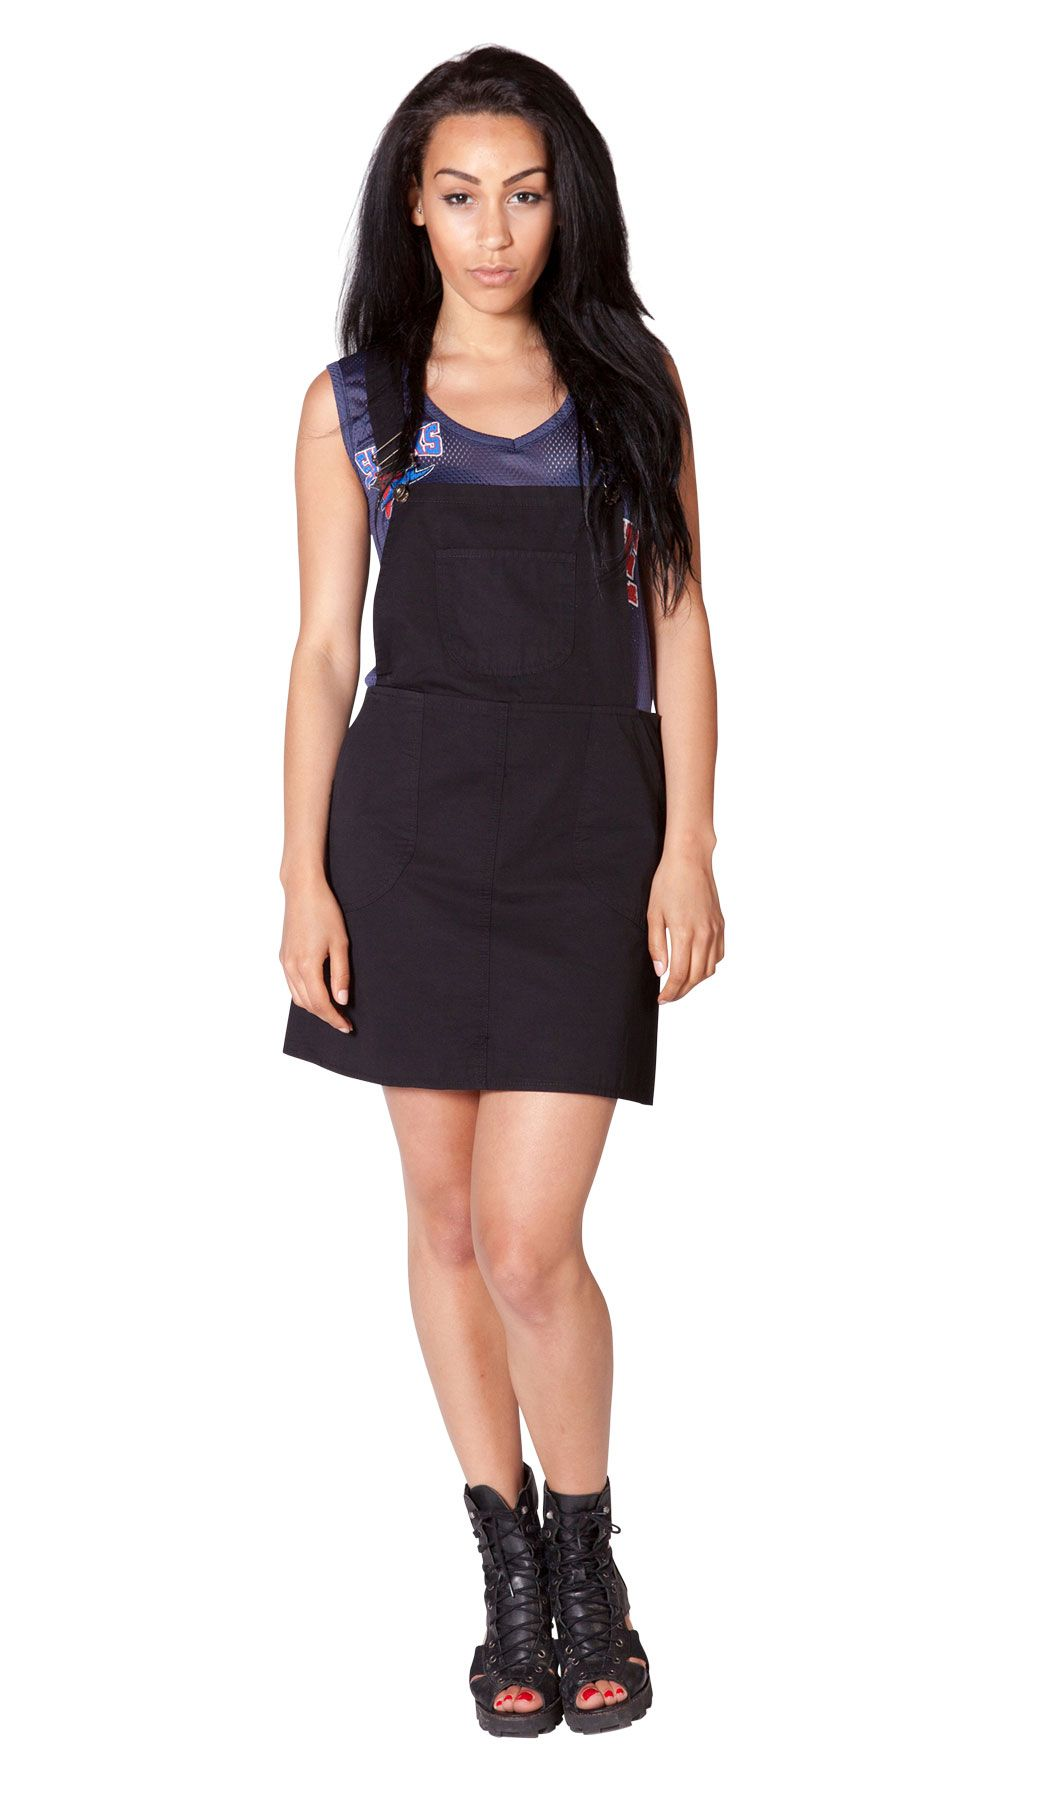 3a53778e37 Womens Dungaree Dress - cute   fashionable this summer. Perfect festival  wear...  dungareedress  skirtall  overallskirt